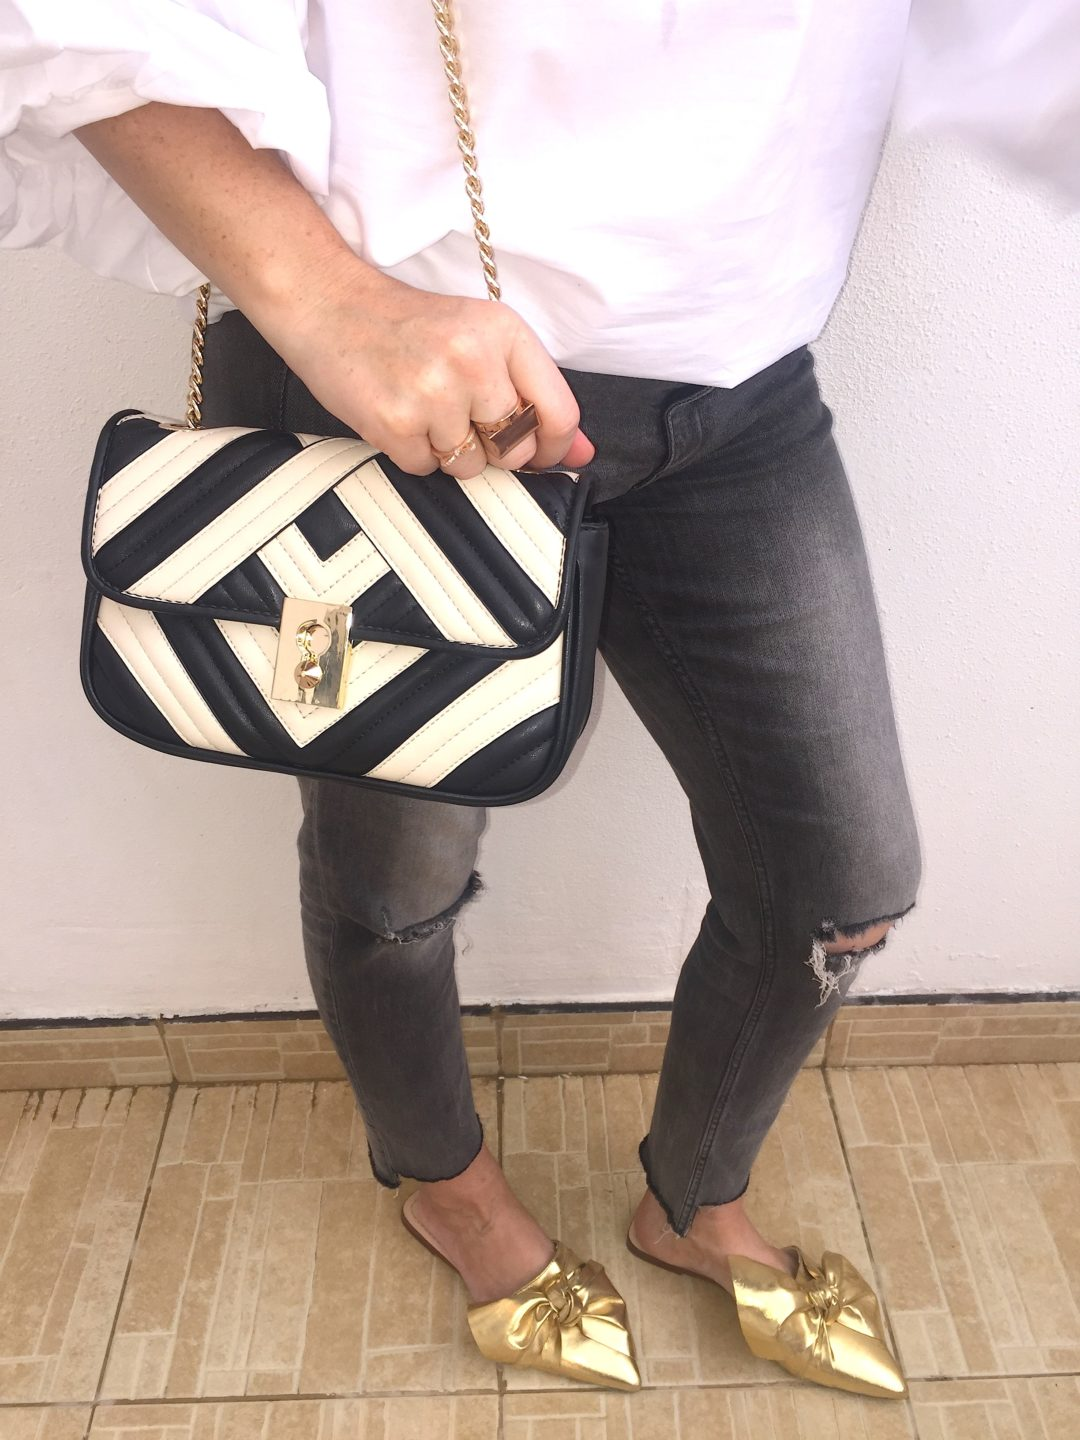 mango-high-street-bag-accessory-accessories-gucci-inspired-inspo-dupe-copy-gg-marmont-matelasse-monochrome-black-white-cream-fashion-style-stylist-blogger-fashionblogger-gingham-and-sparkle-trend-designer-hot-it-chevron-leather